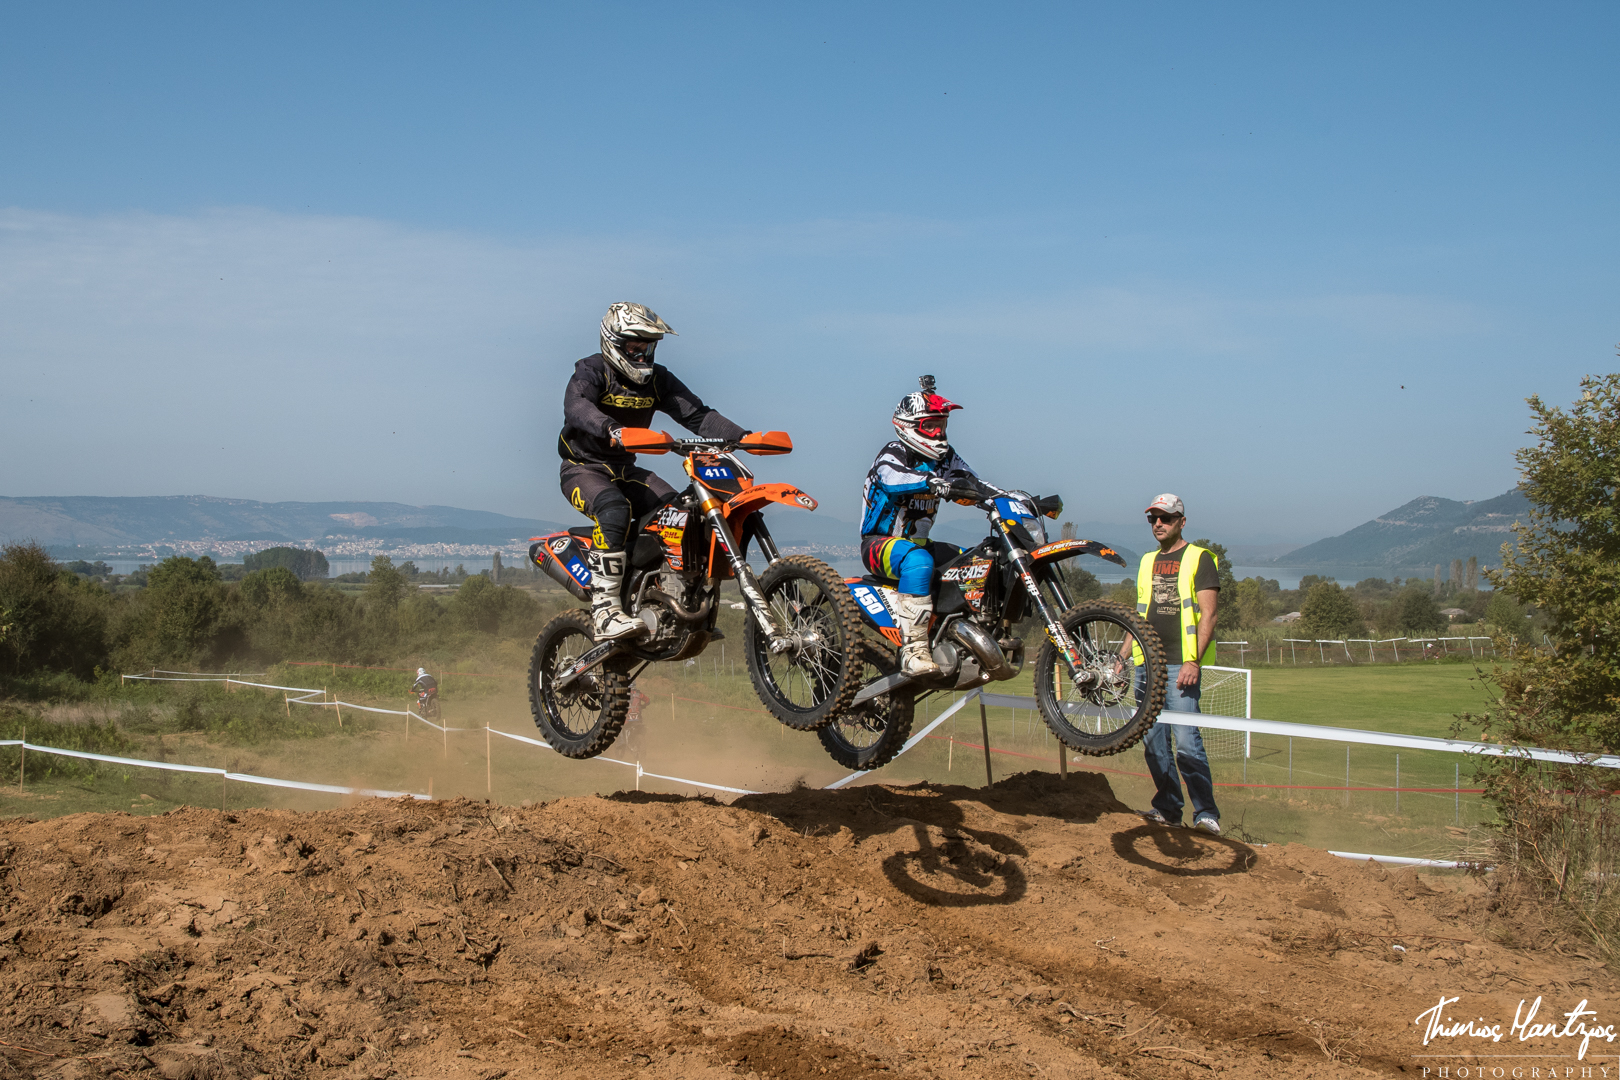 Scramble off-road motorcycle racing